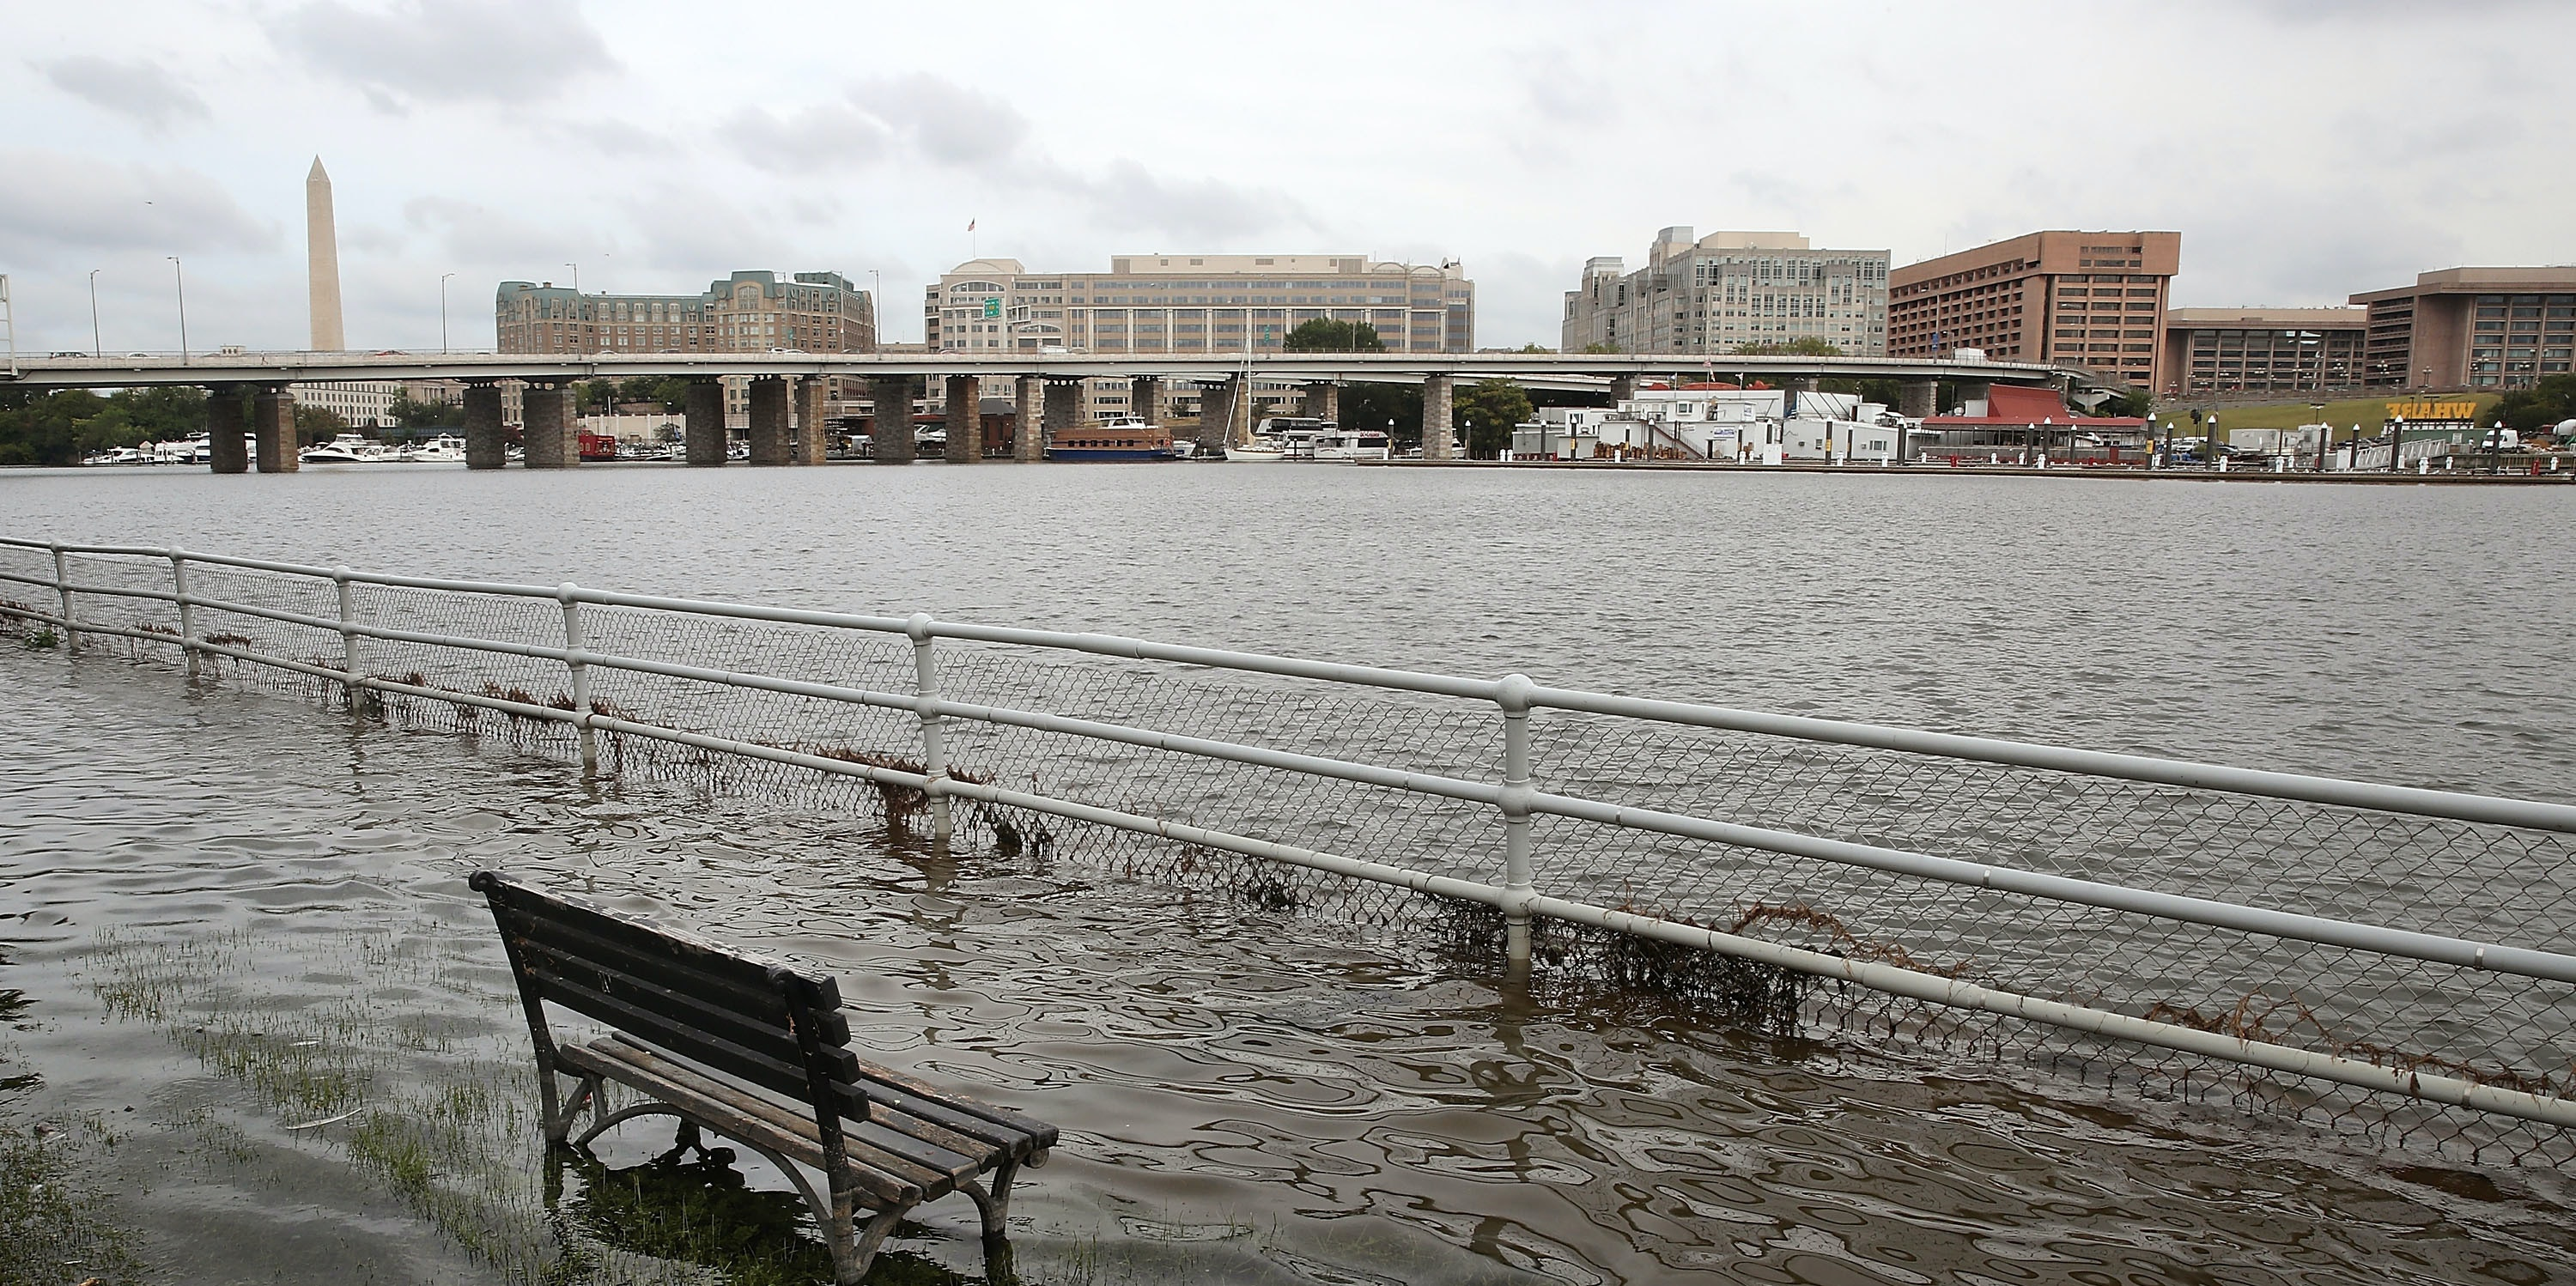 Scientists May Have Underestimated Global Sea Level Rise